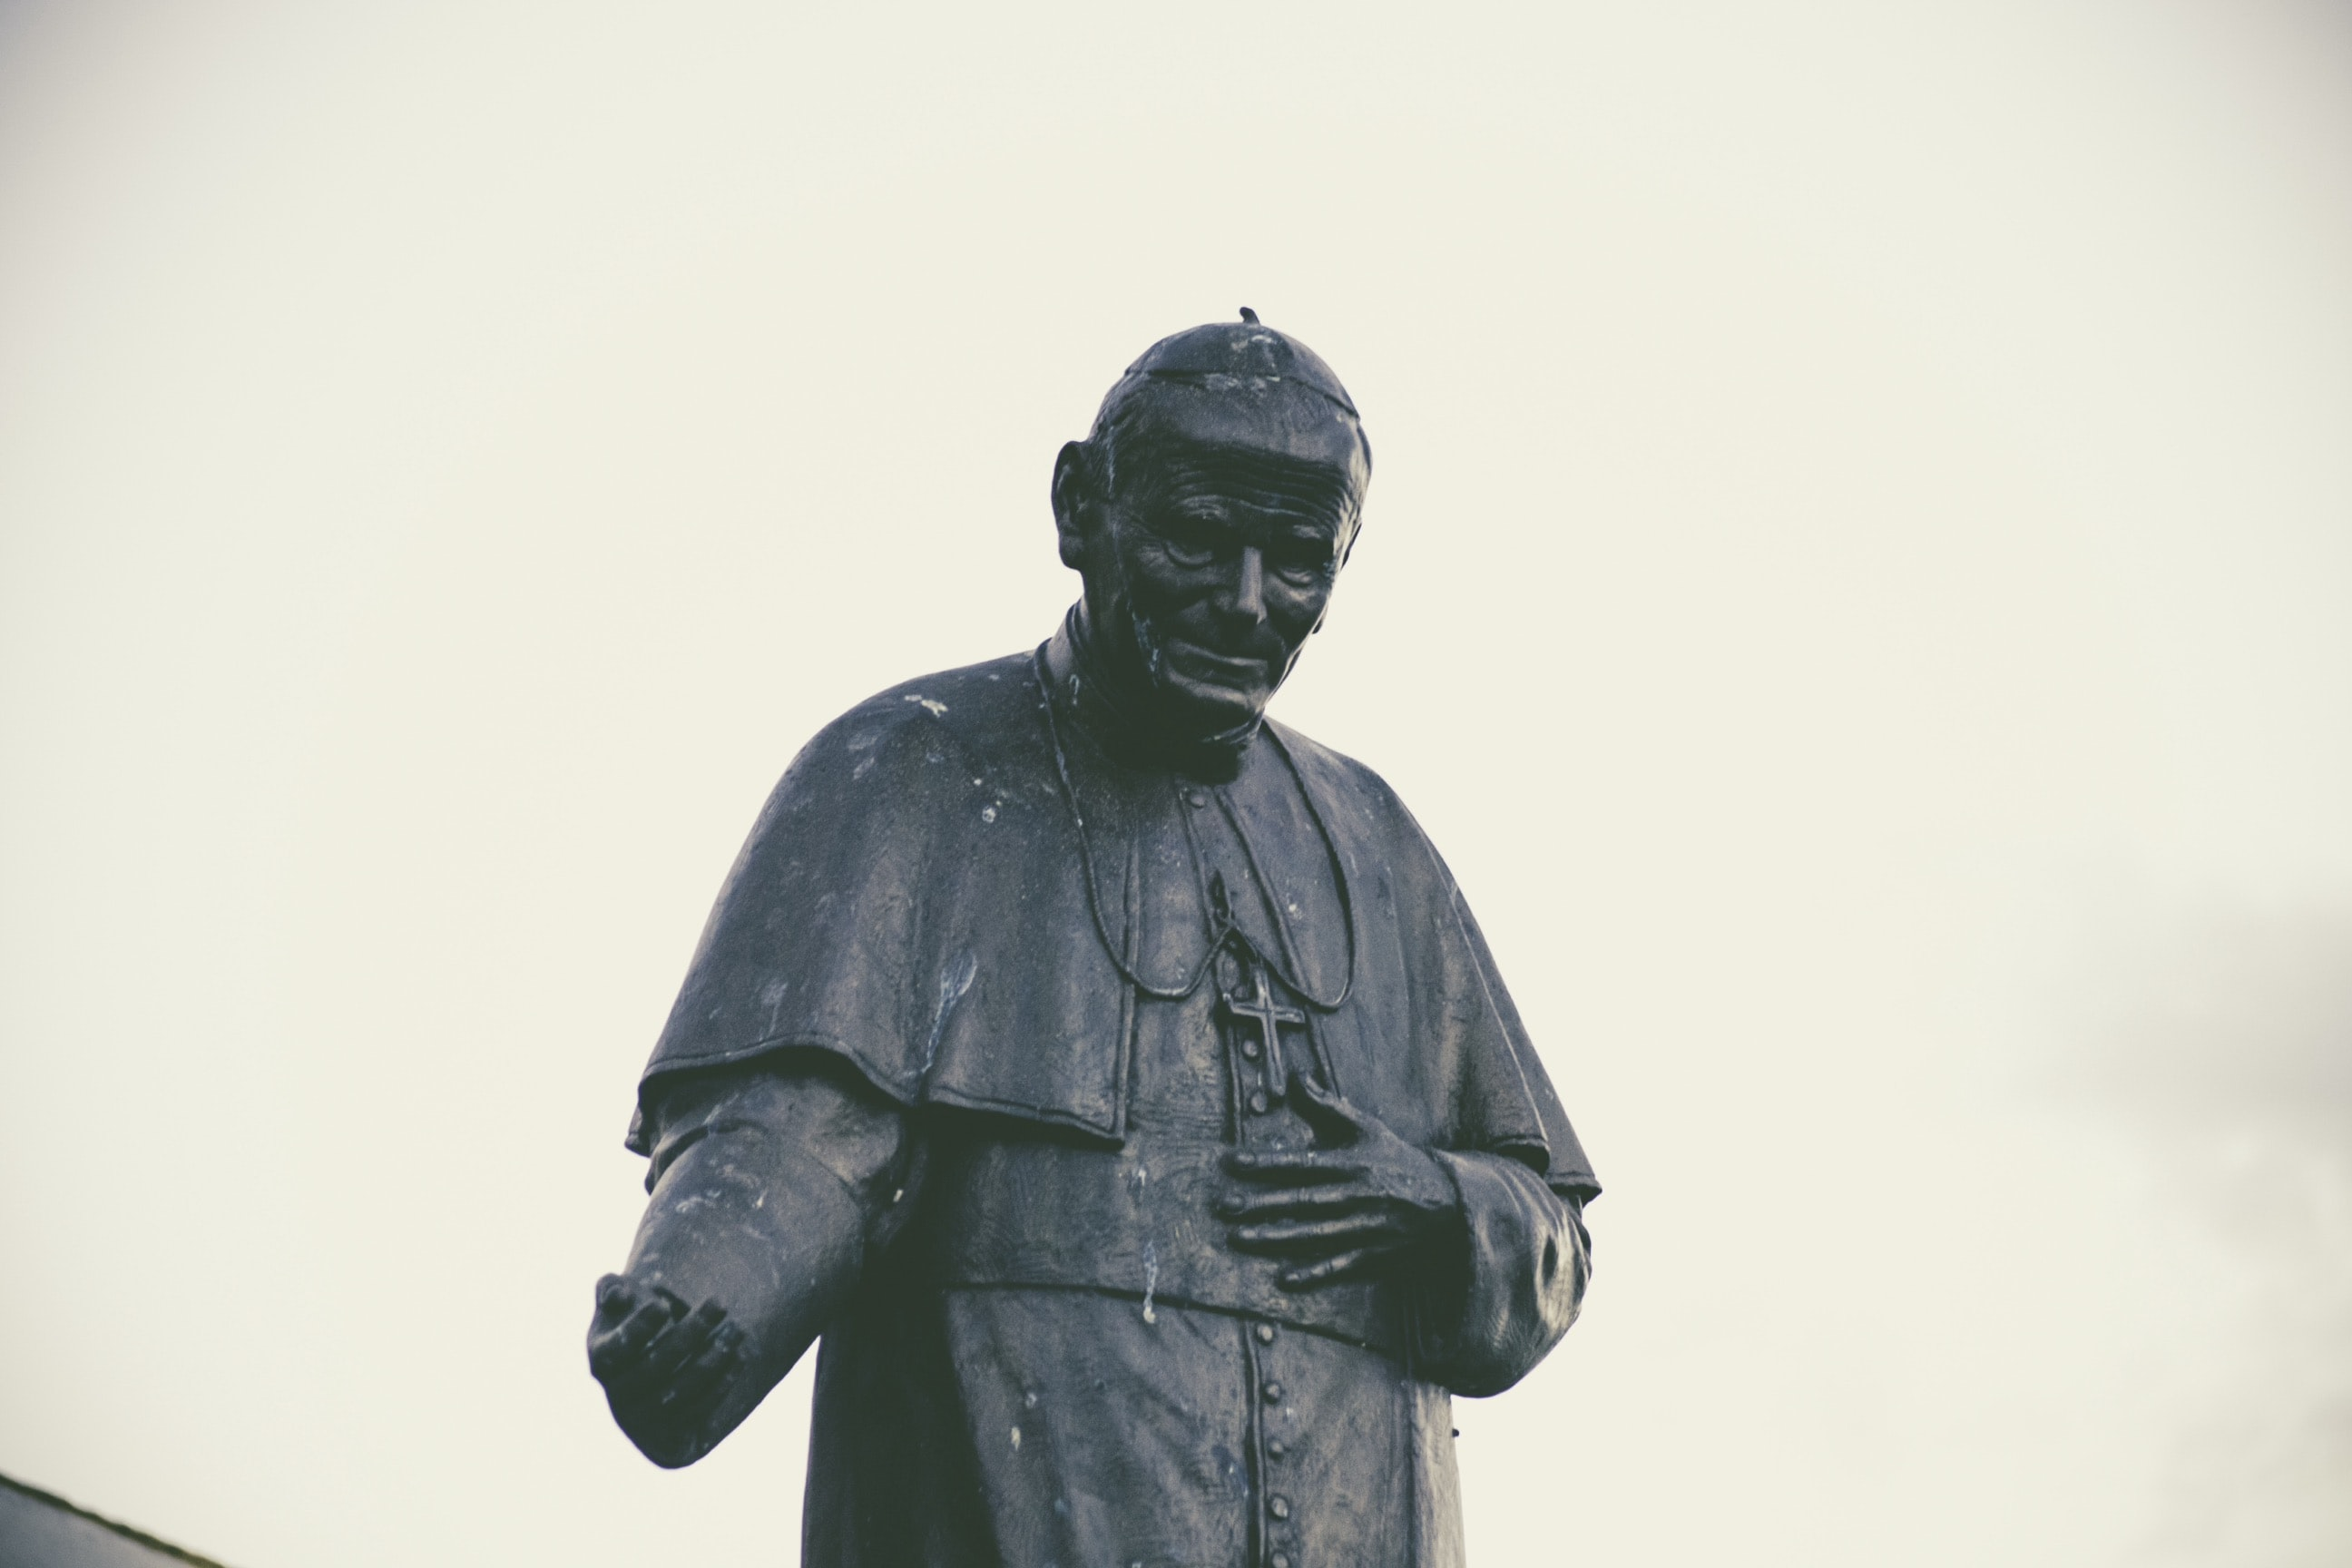 black concrete Pope John Paul statue during daytime